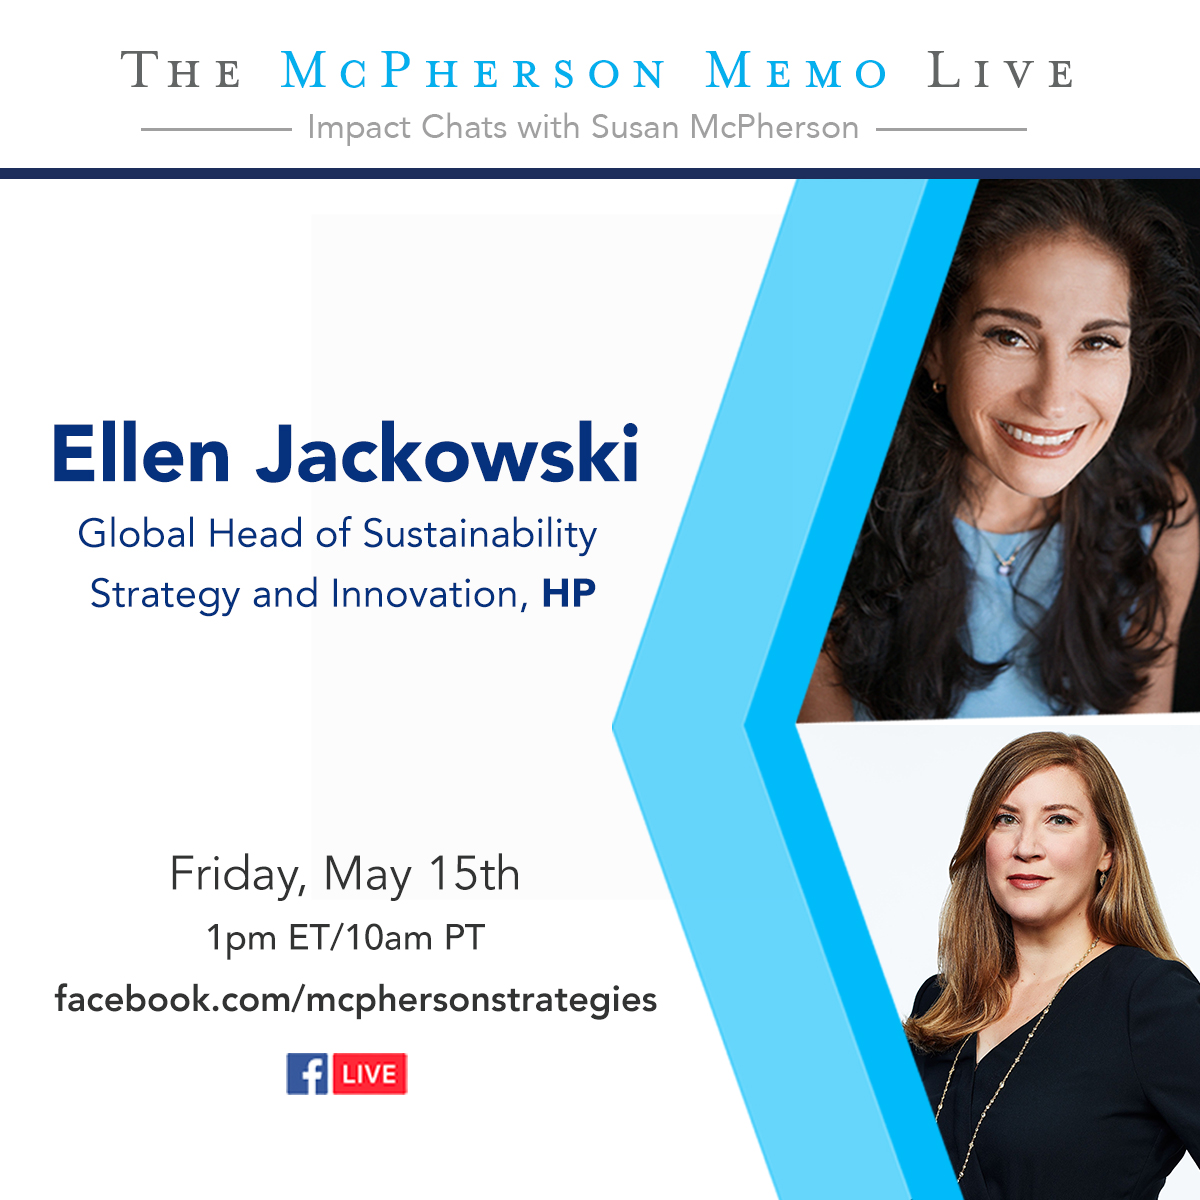 Today at 1pm ET, I'll chat with @ellenjackowski, Global Head of Sustainability at @HP. Well discuss the company's initiatives to support health responders, businesses and communities during #COVID19. Join us: bit.ly/2Z07OYV #McPhersonMemoLive